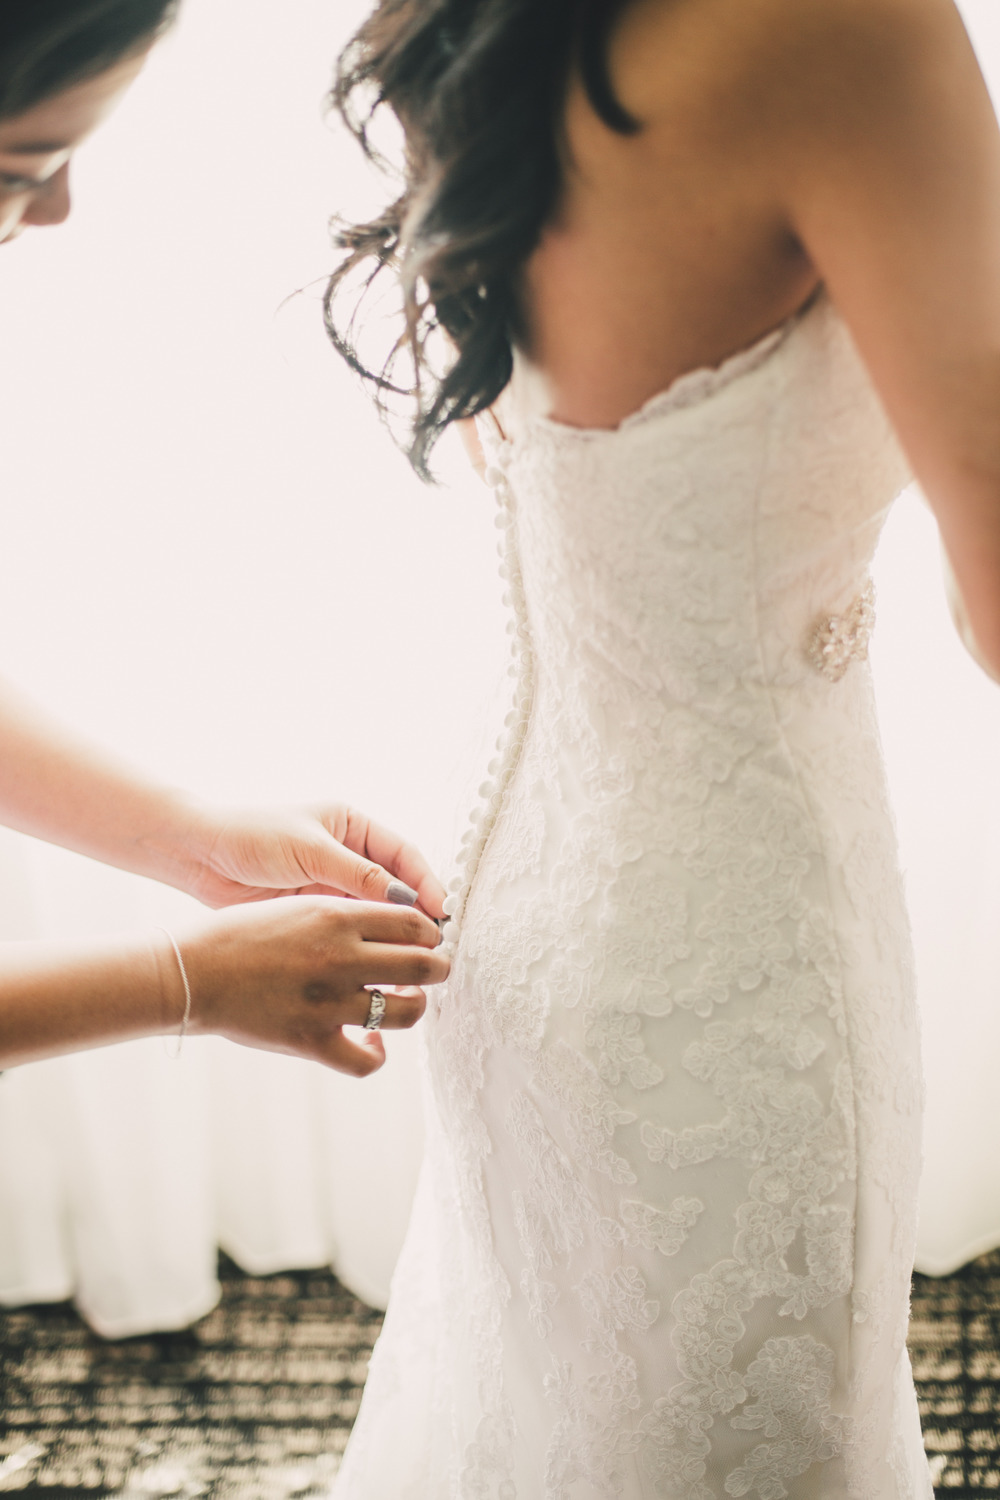 Madel + Andrew - Wedding, Natalie Griffo (39 of 169).jpg